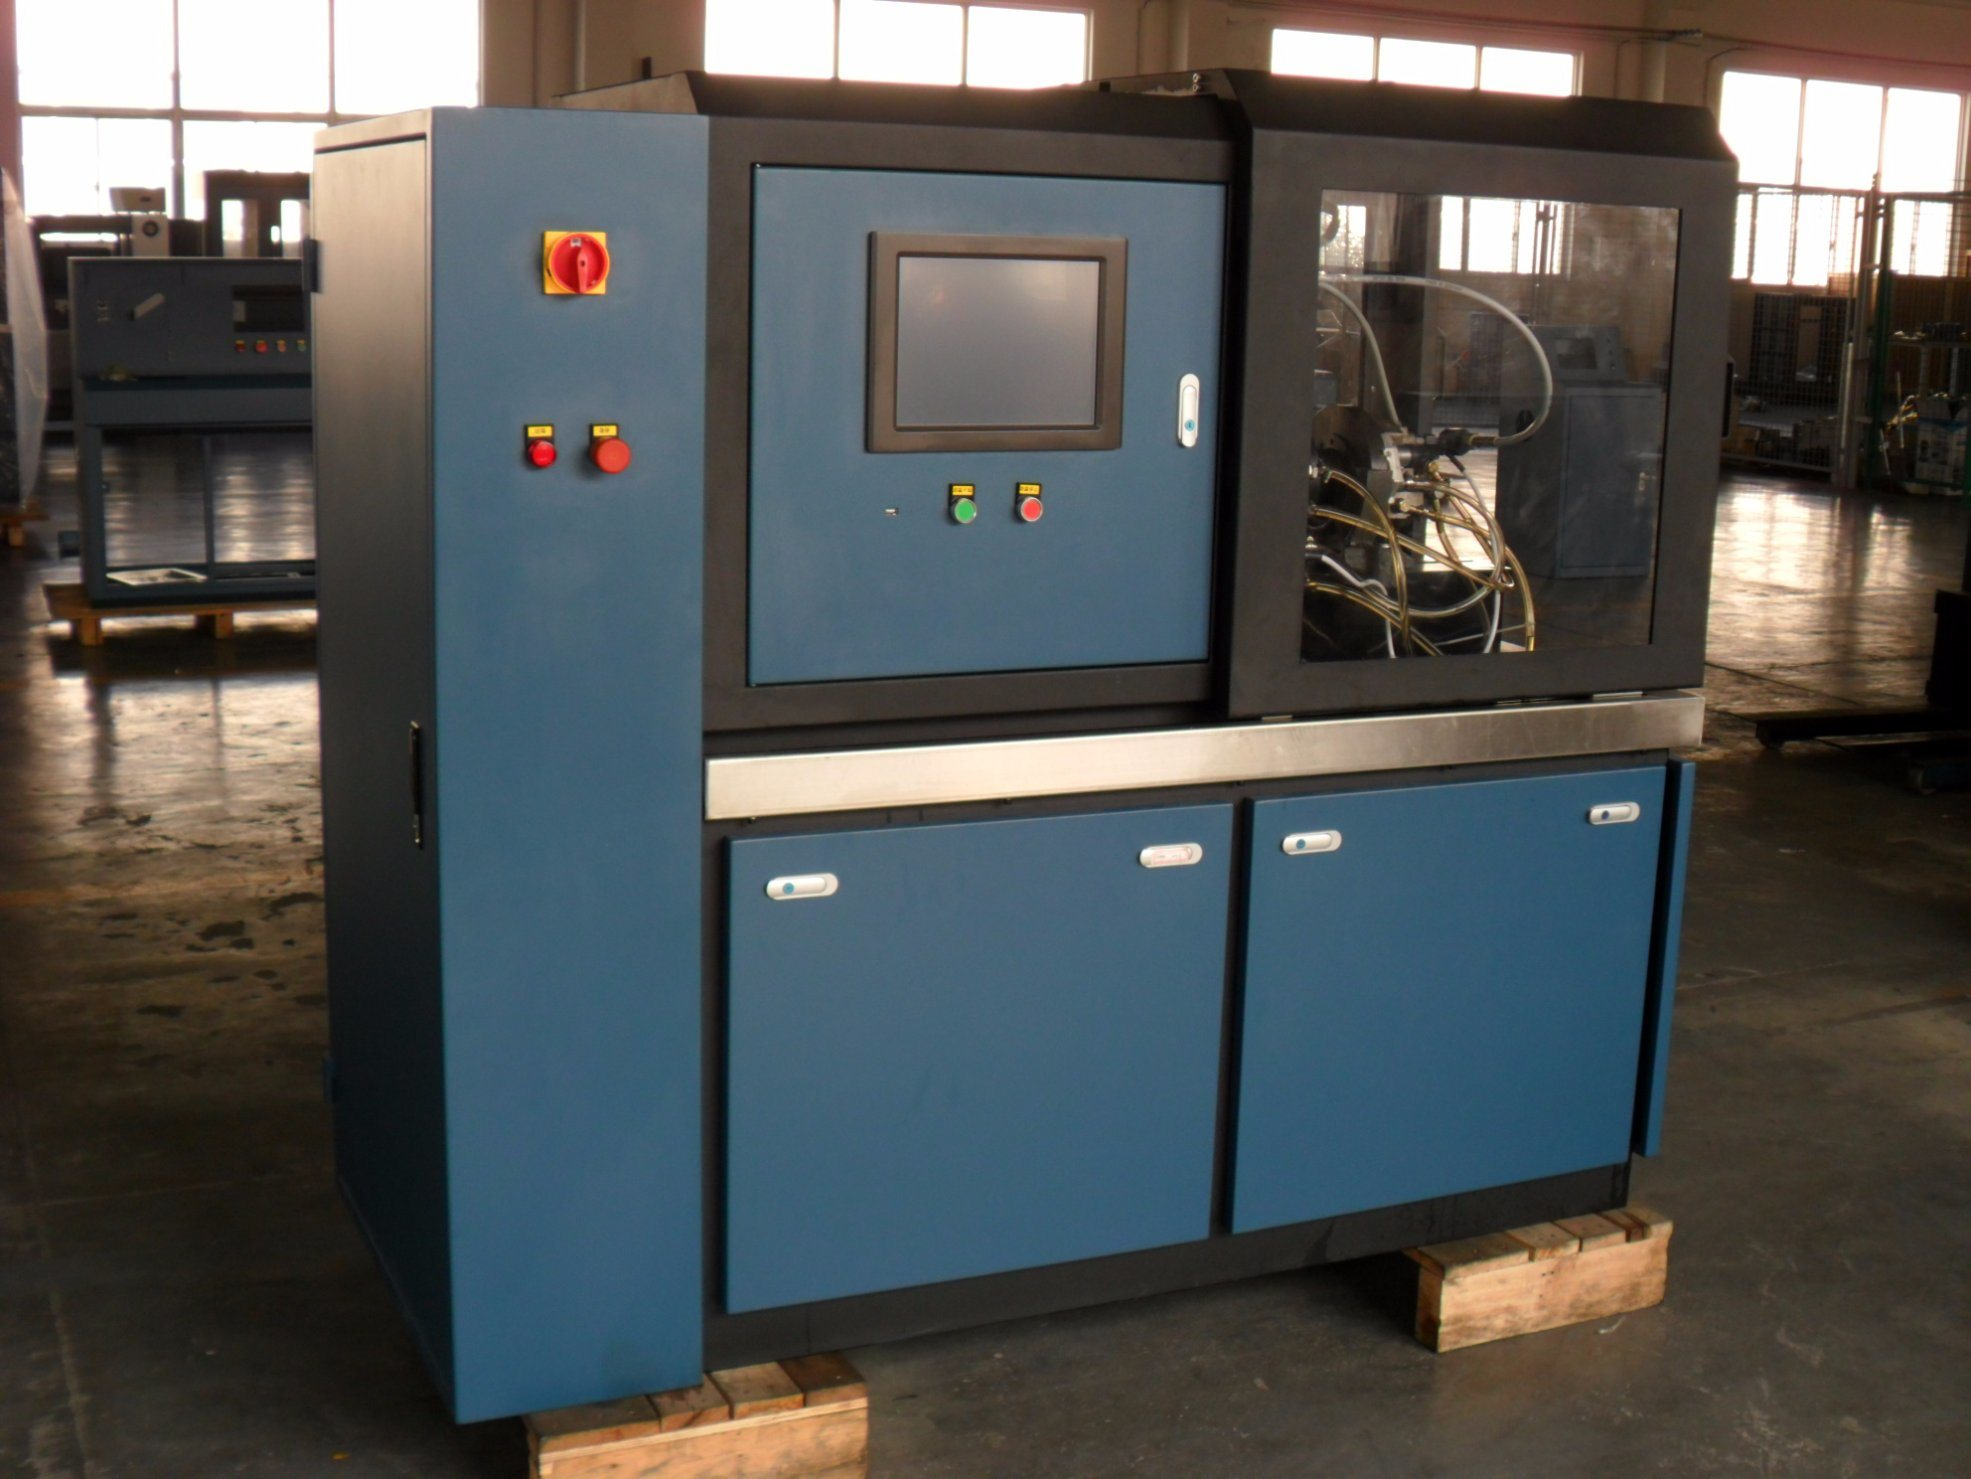 Classic Model Spt2000 Common Rail Test Bench-Injector and Pump of Bosch, Denso, Delphi, Cat, Cummins